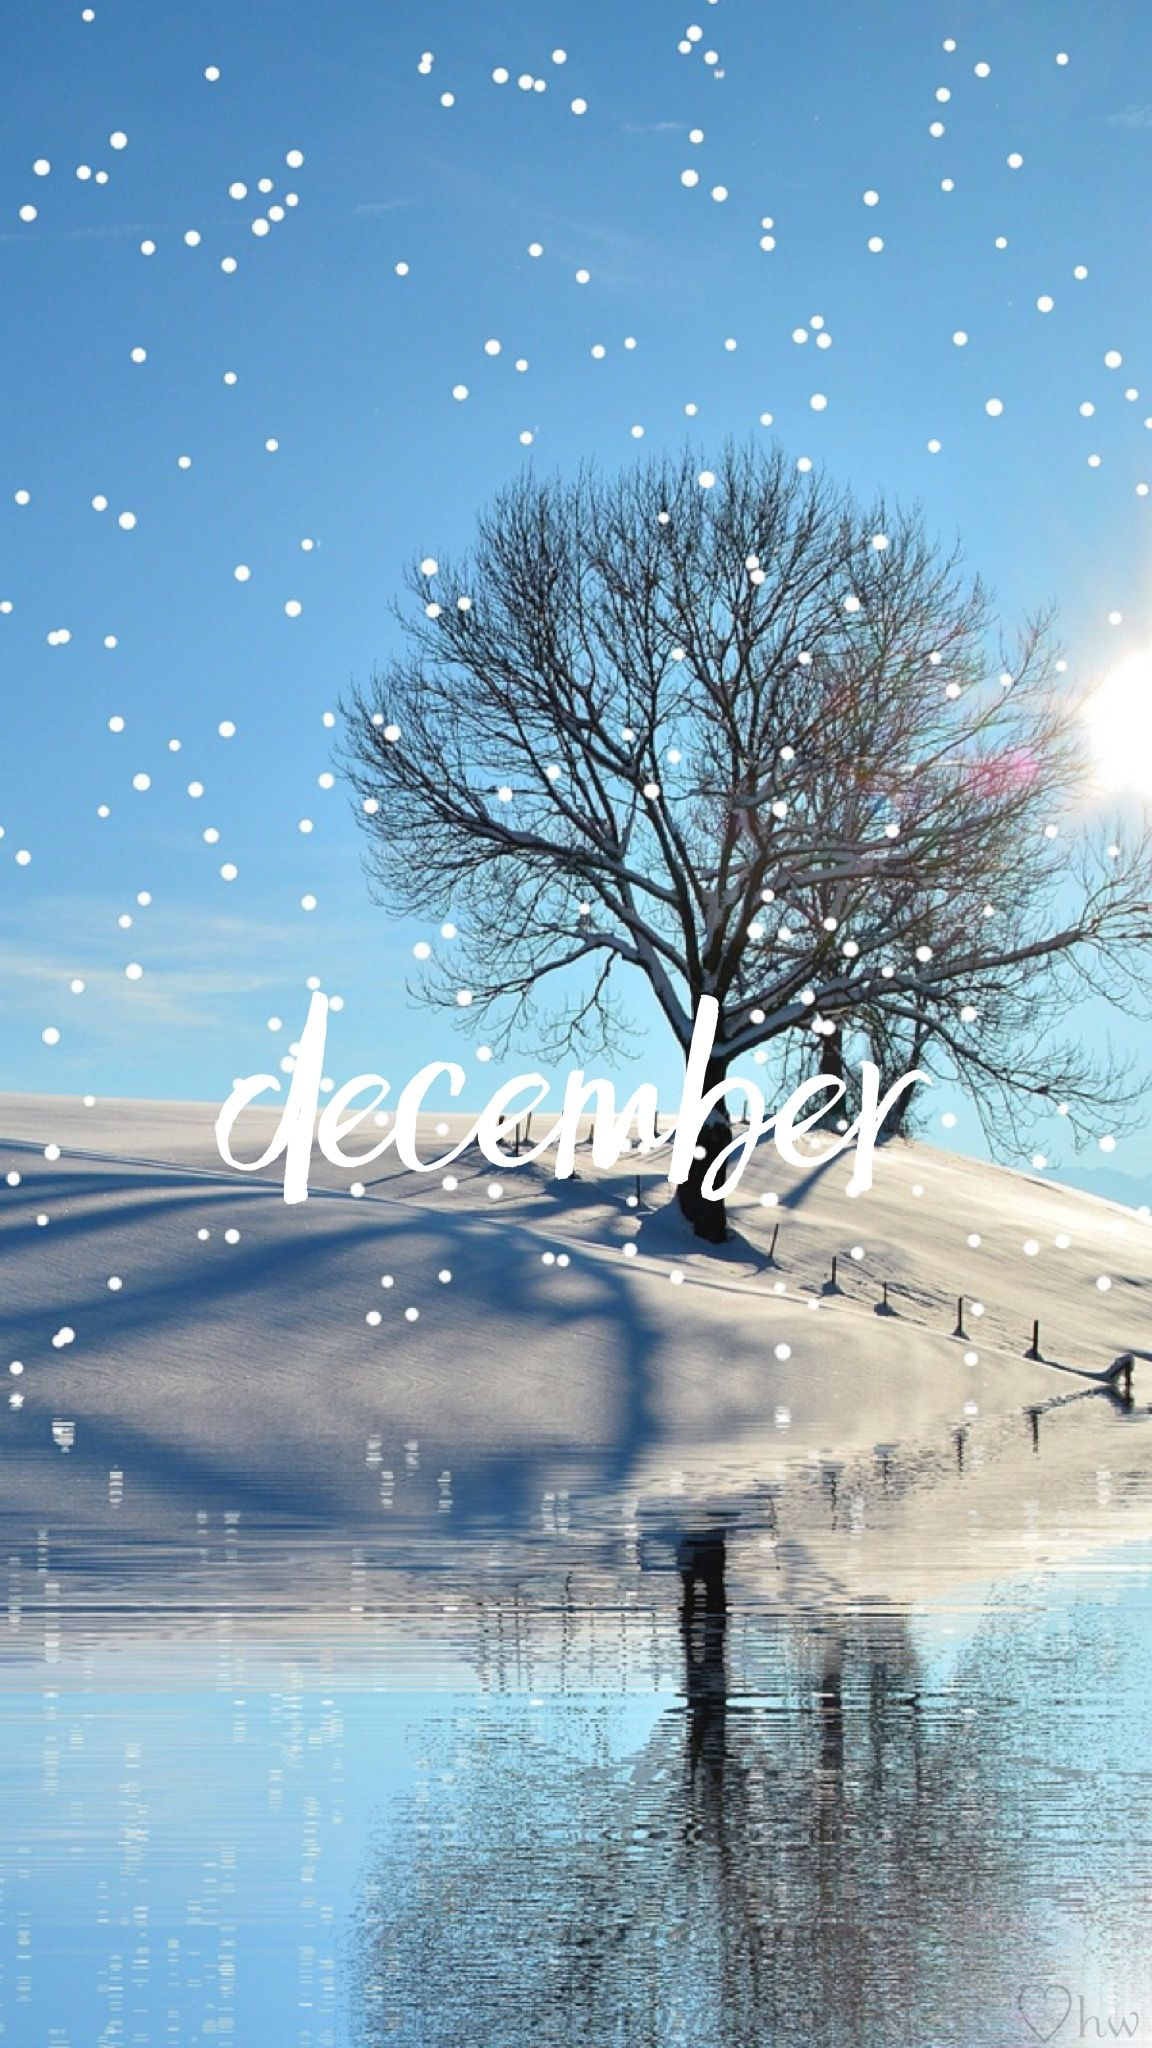 Perfect ۵wisp #holiday #snow #winter #quote #wallpaper #december